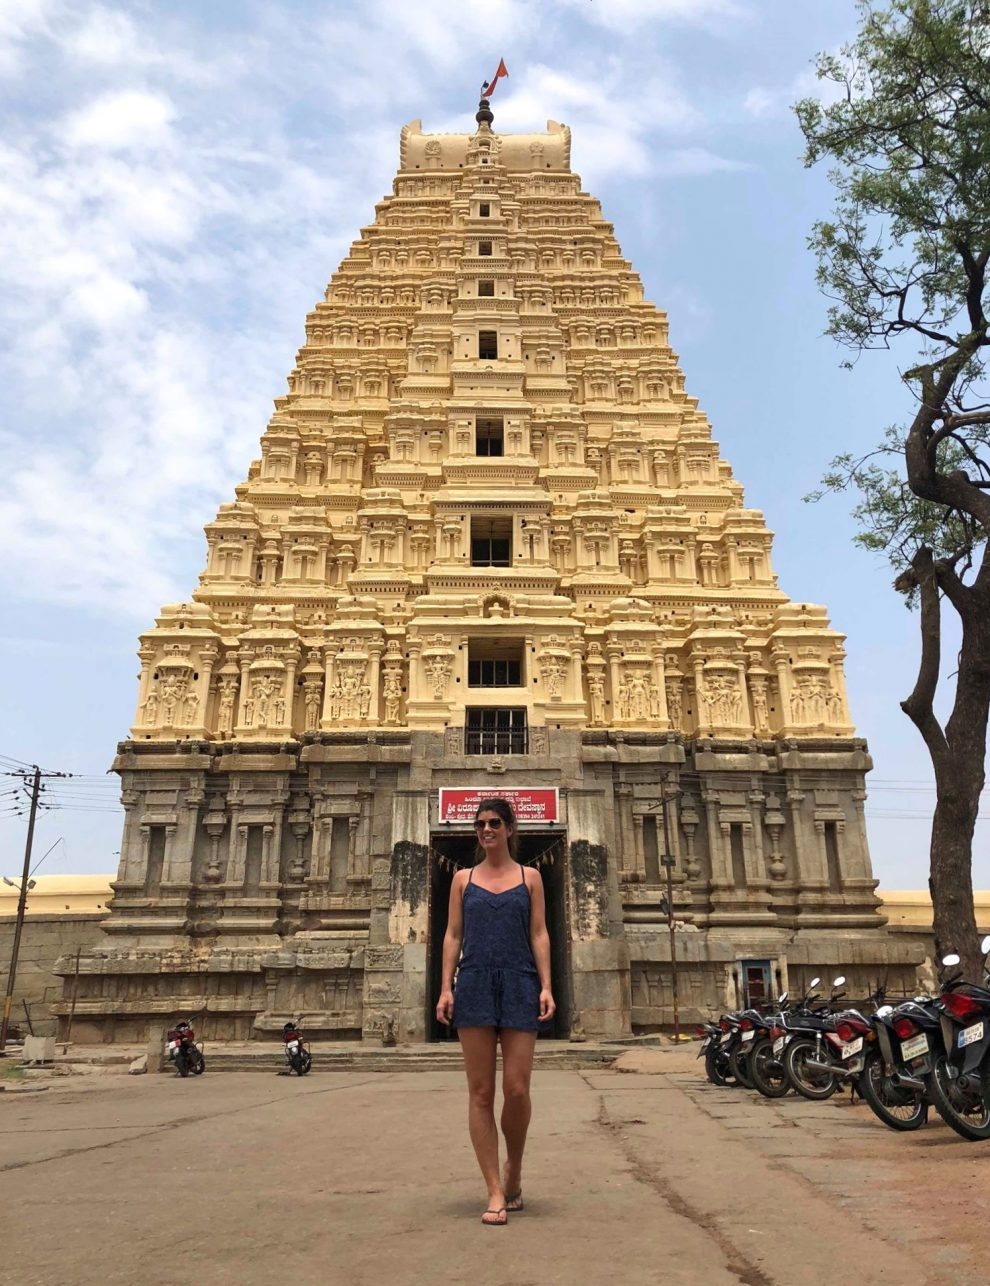 Reizen naar Hampi, Virupaksha Temple travel guide to Hampi India